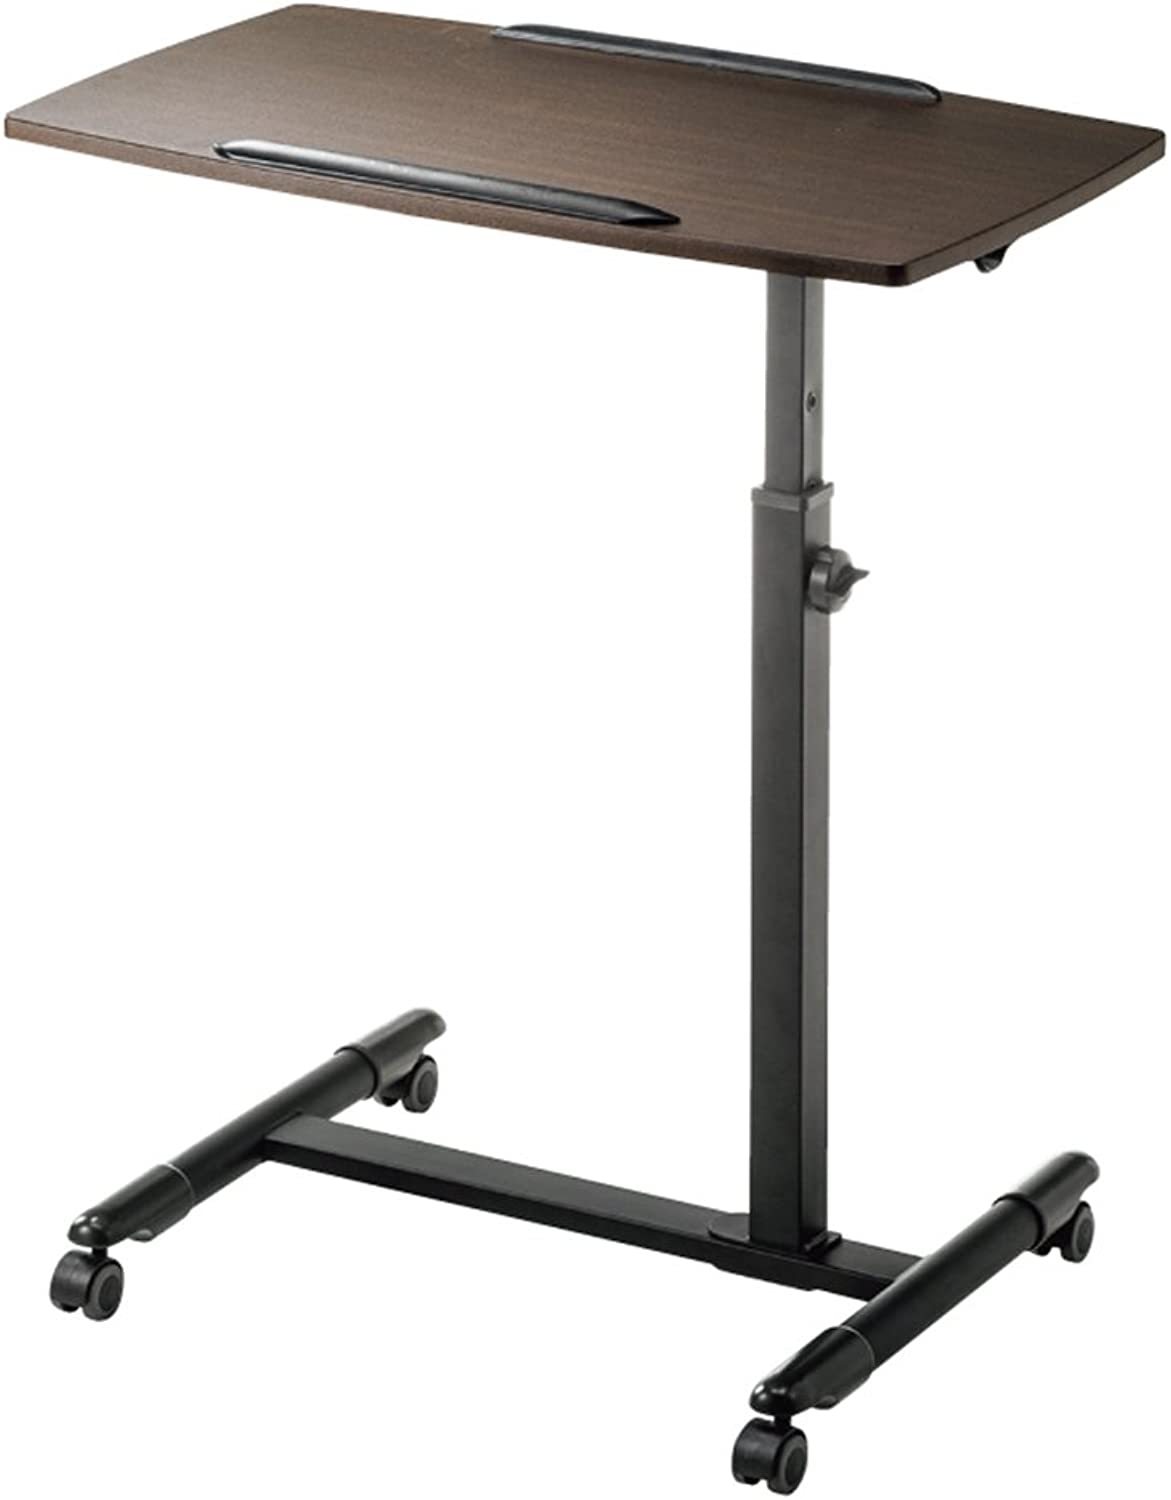 PENGFEI Laptop Stand for Desk Bedside Sofa Table Multifunction Portable Meeting Room Workstation Can Be Promoted and Lowered Pulley 4 colors, High 700-880MM (color   Brown)